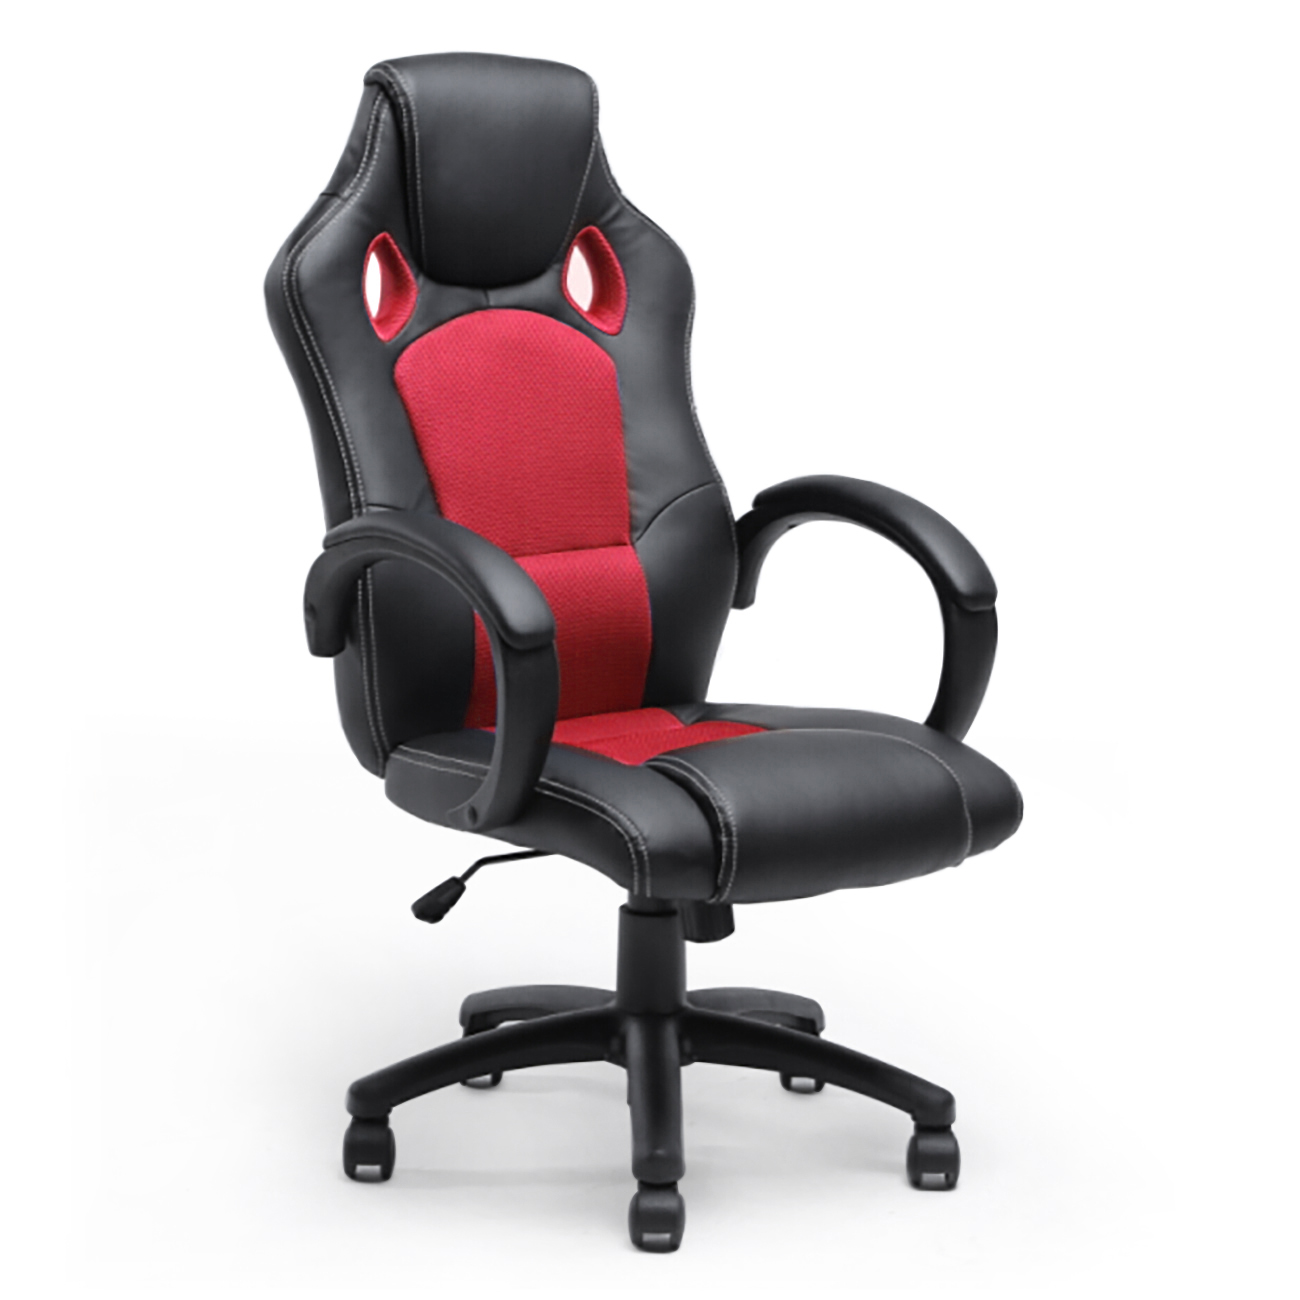 high back race car style bucket seat office desk chair gaming computer chair new ebay. Black Bedroom Furniture Sets. Home Design Ideas